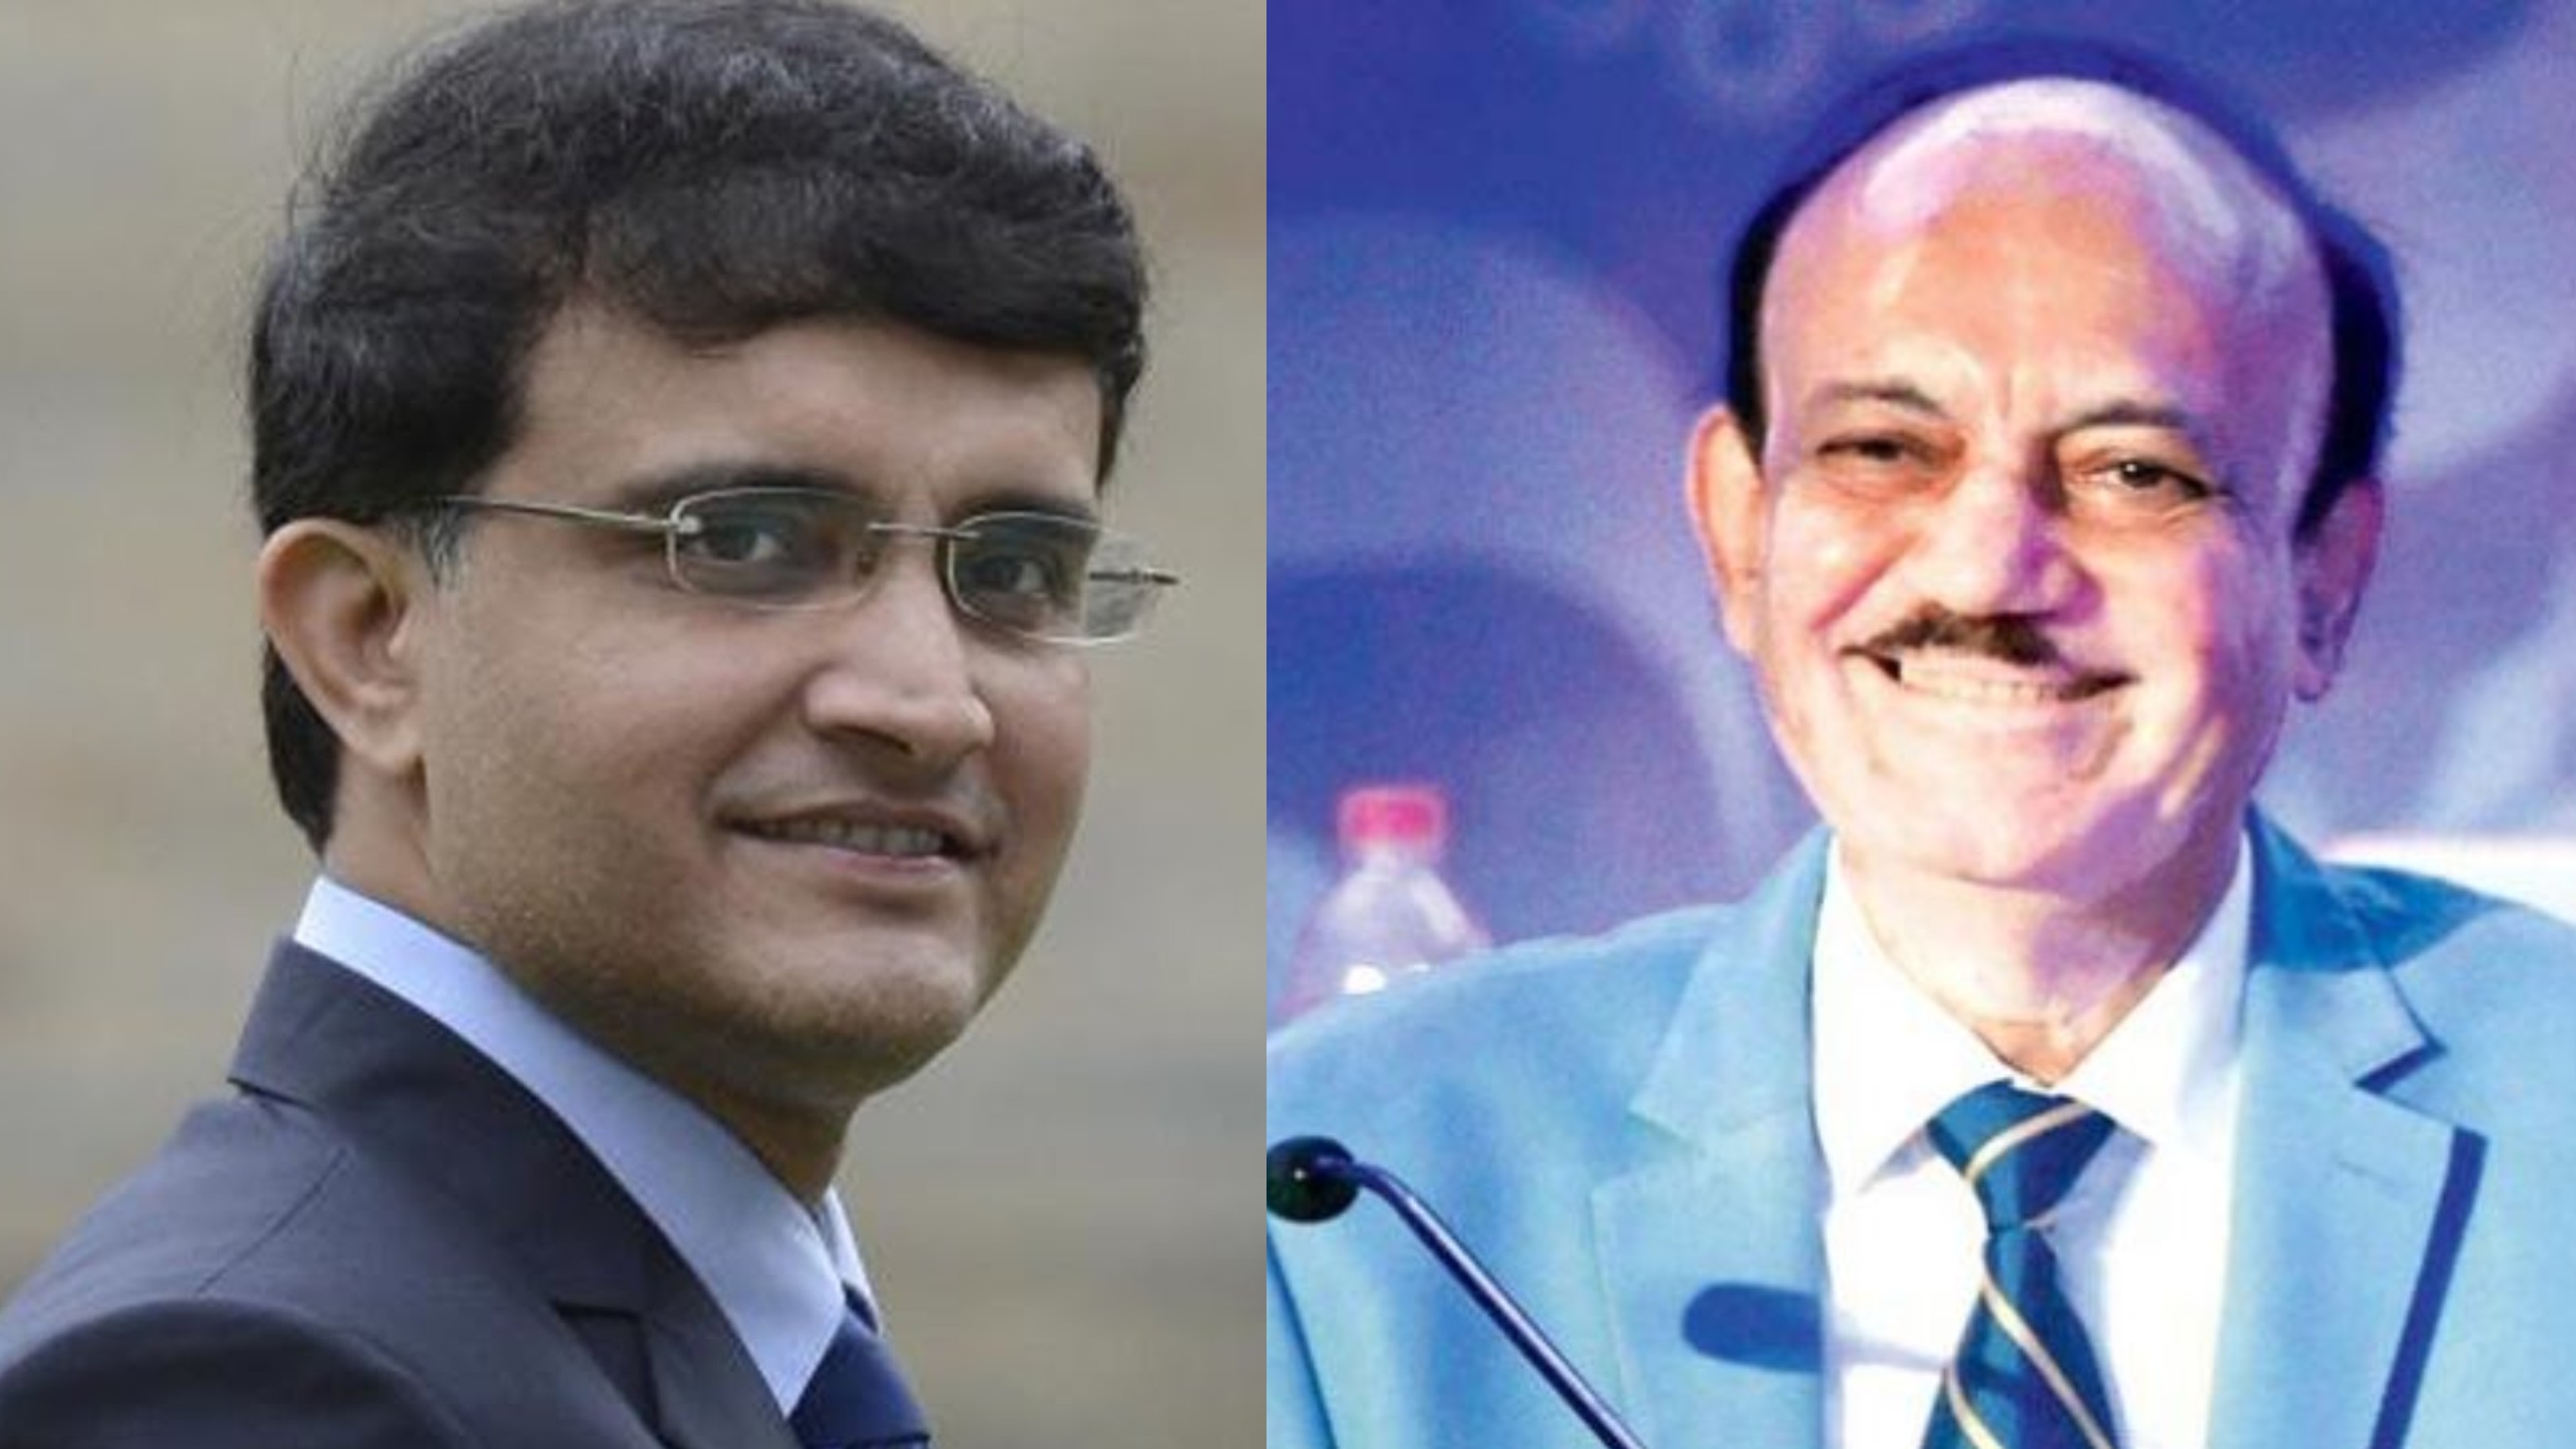 Interim chief CK Khanna speaks on appointment of Sourav Ganguly as new BCCI President